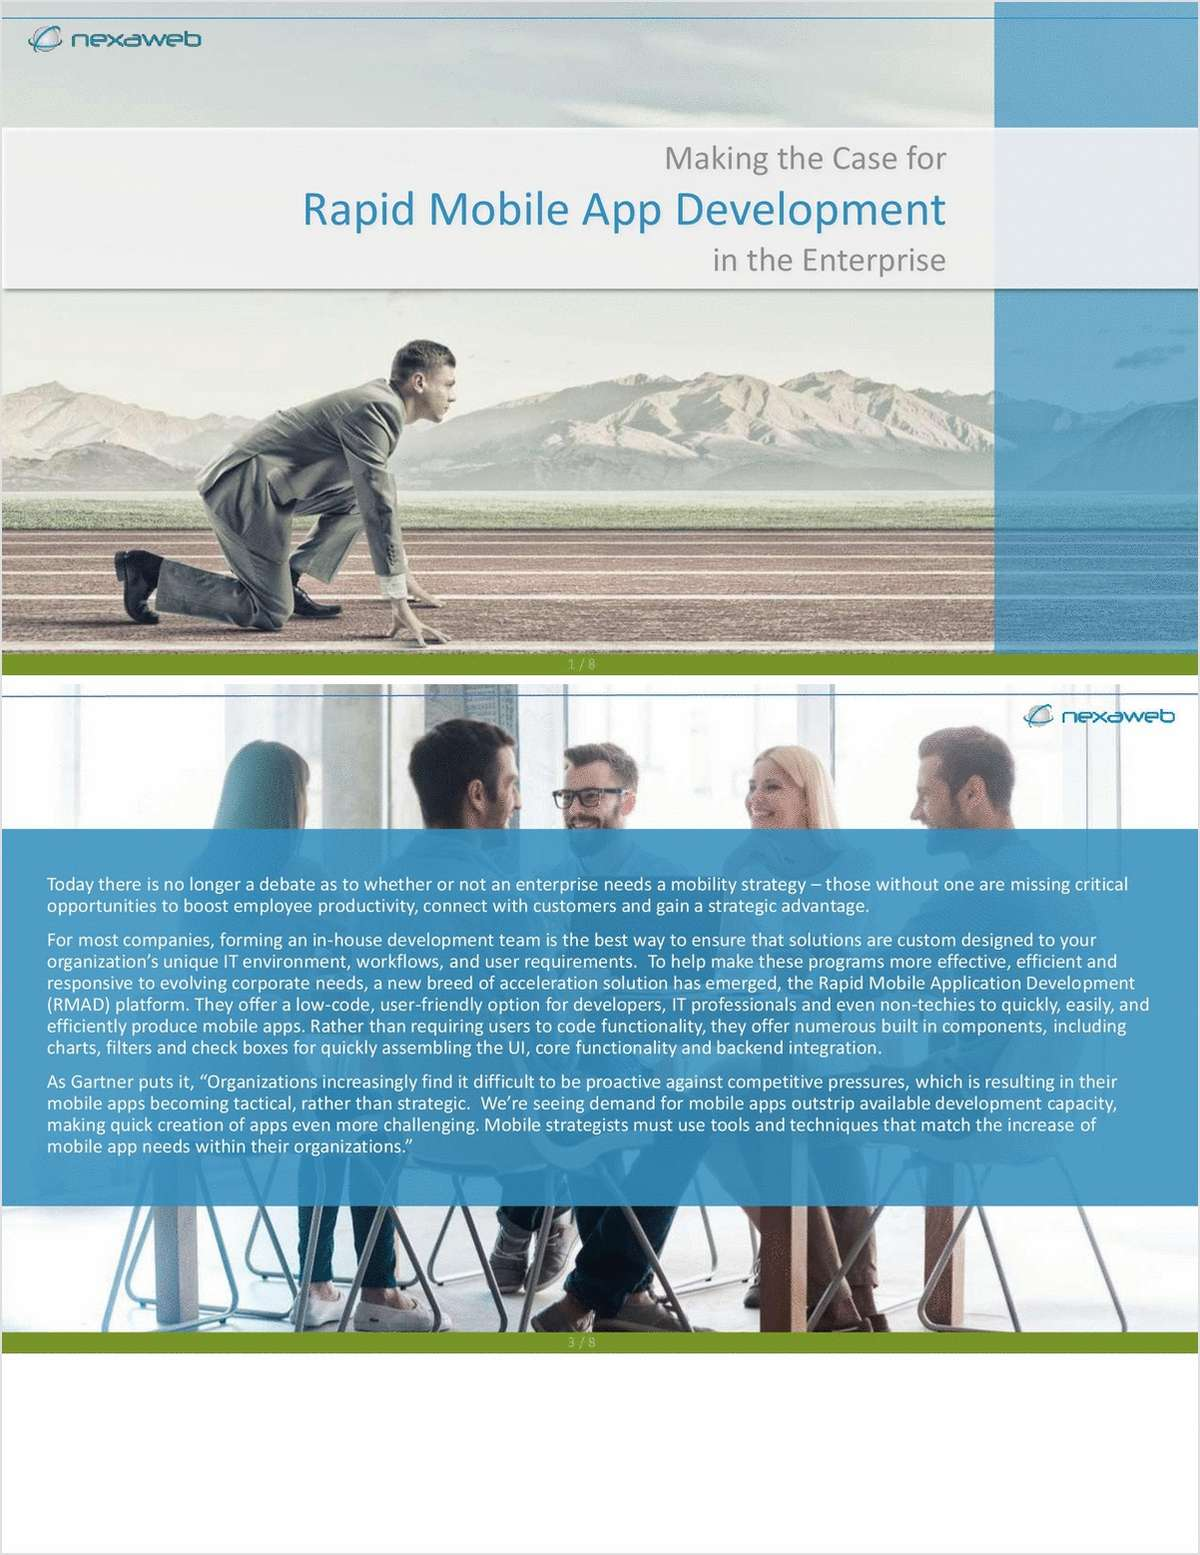 Making the Case for Rapid Mobile App Development